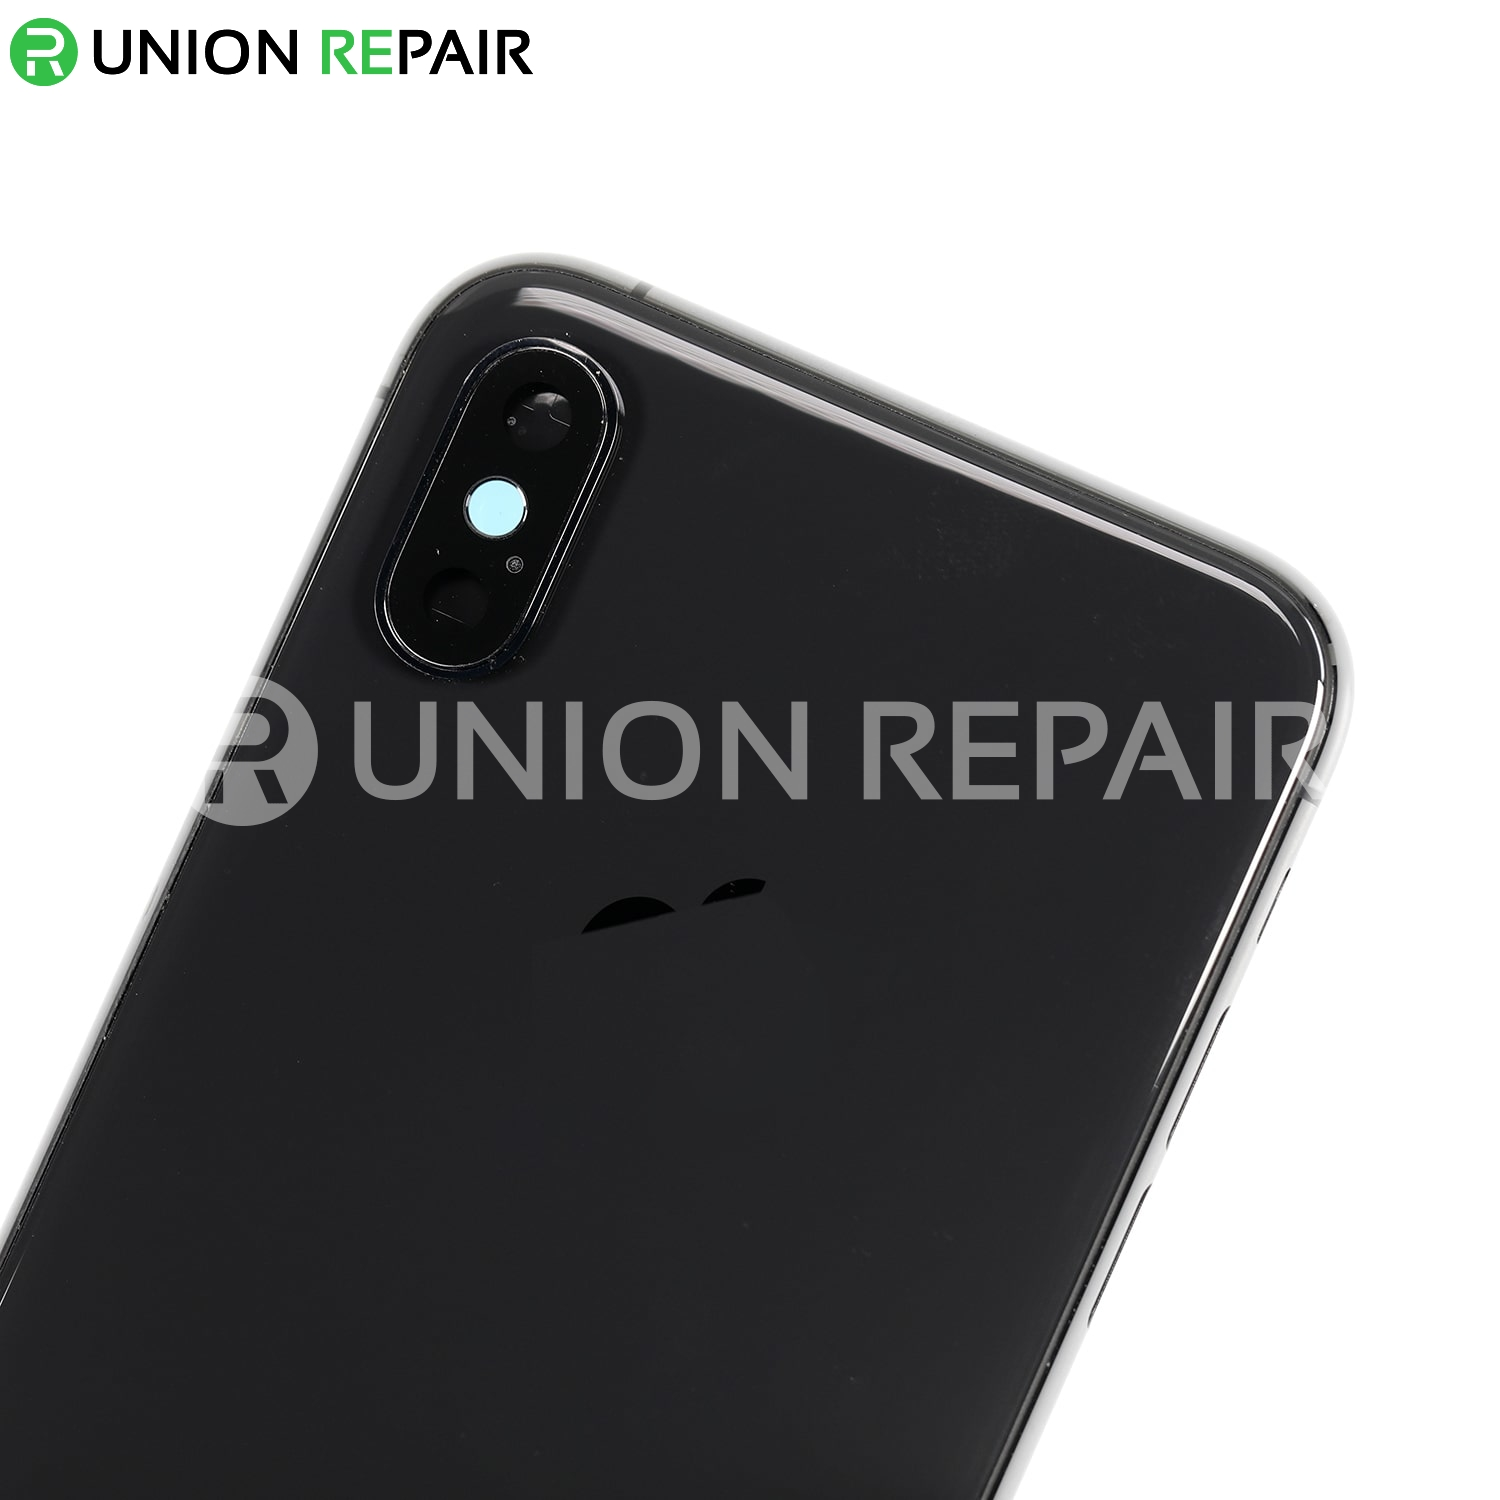 Replacement for iPhone Xs Rear Housing with Frame - Space Gray